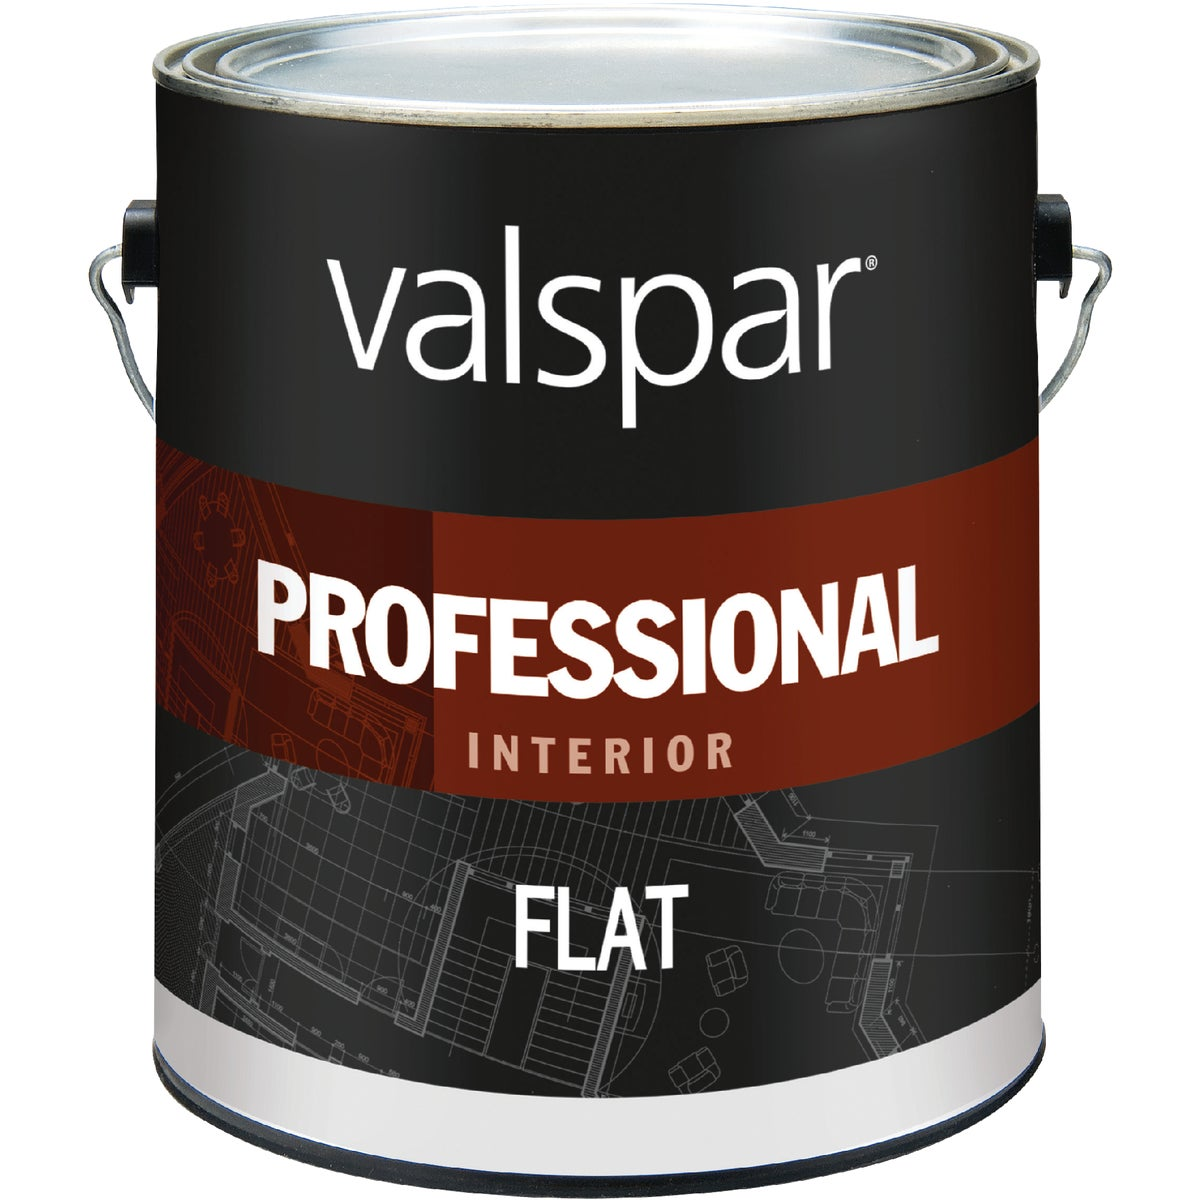 INT FLAT LGHT BASE PAINT - 045.0011611.007 by Valspar Corp